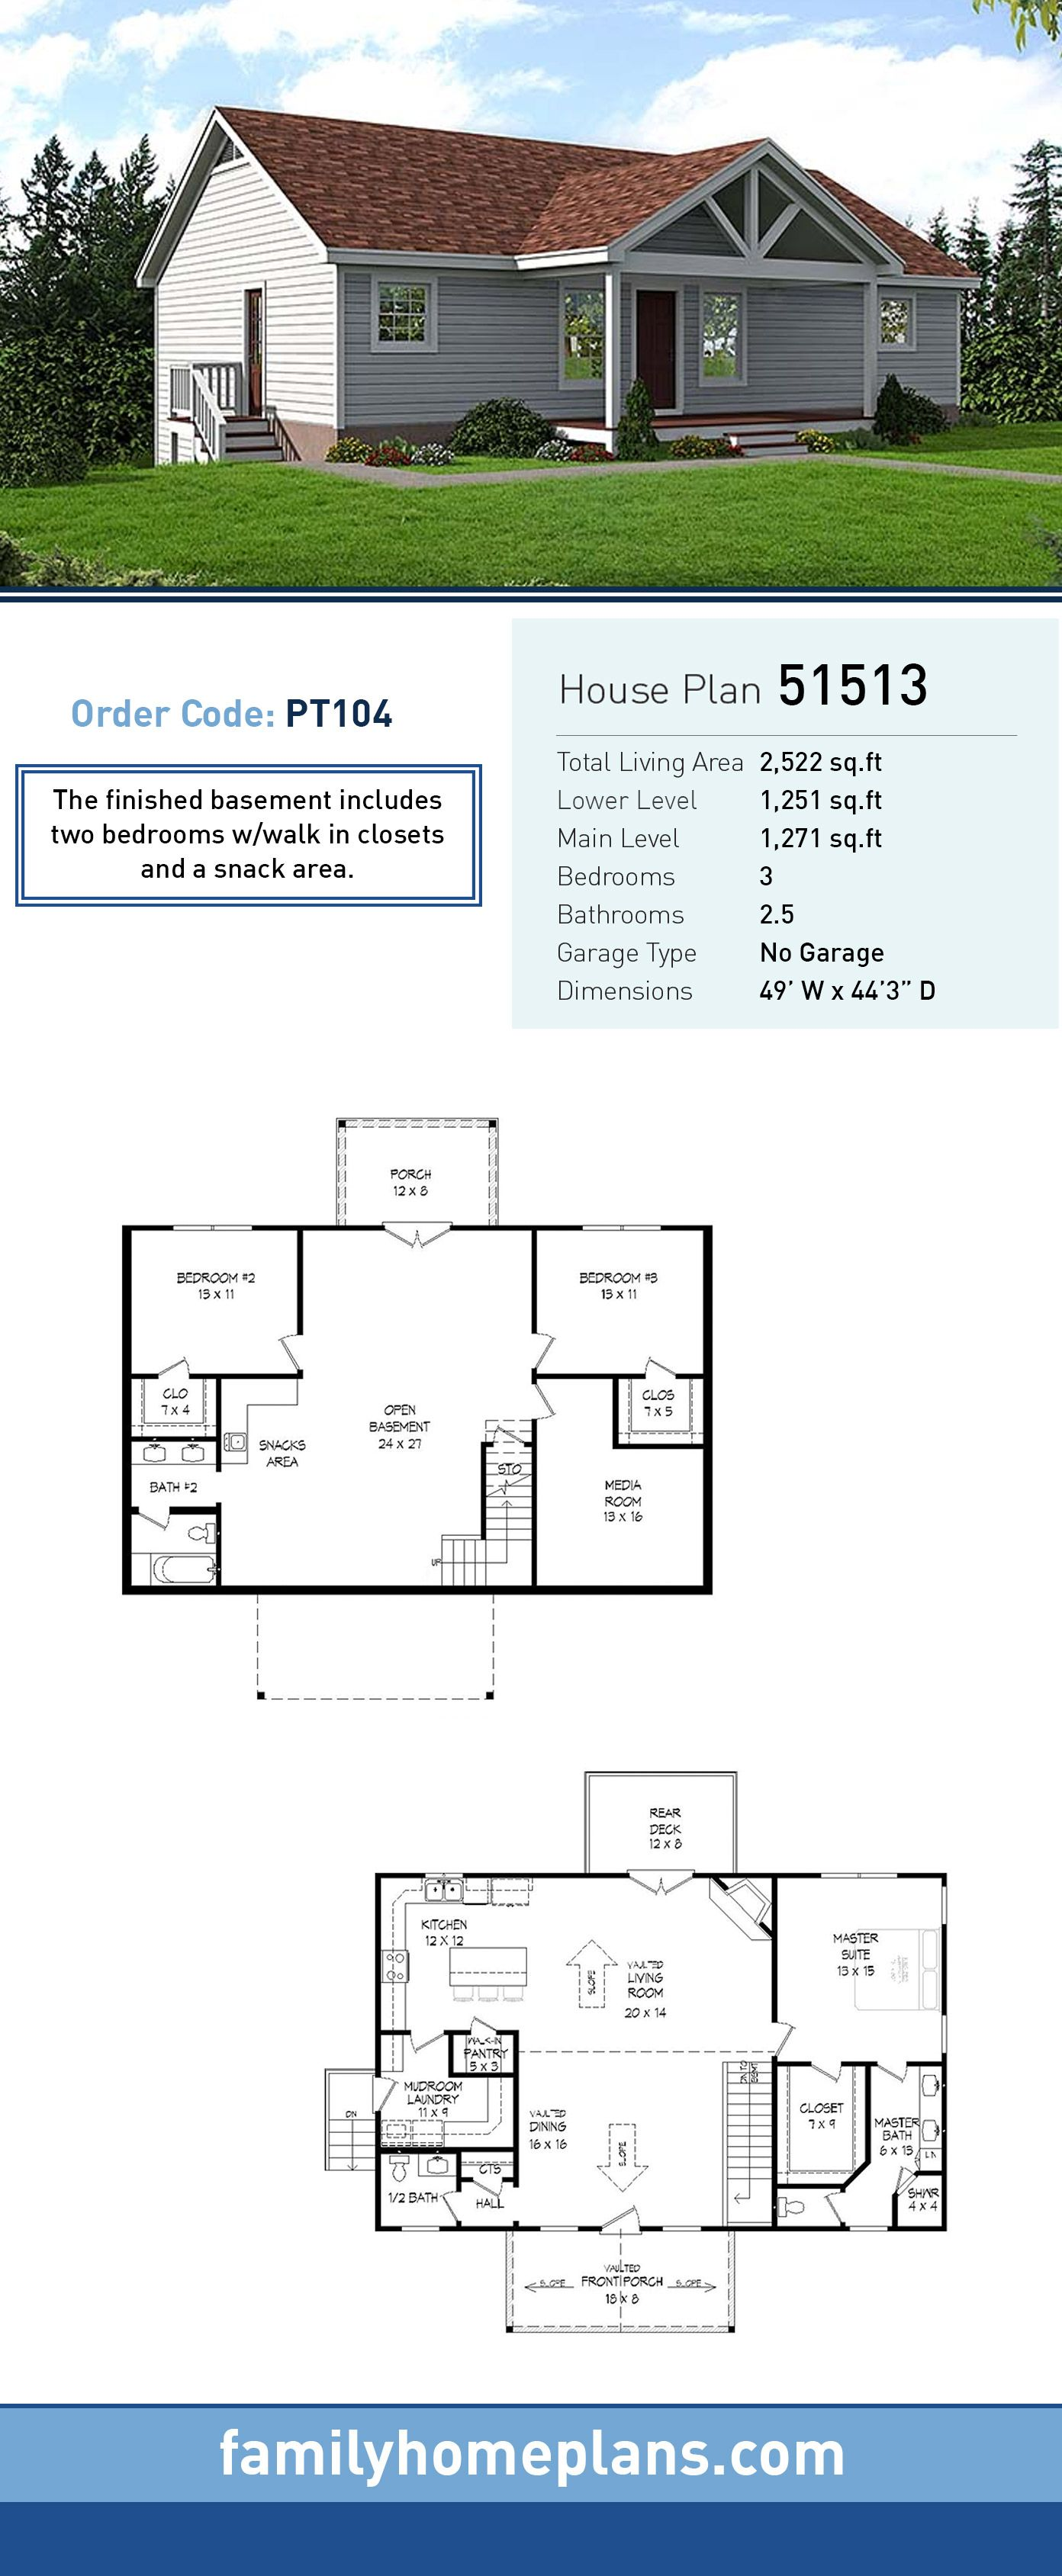 Traditional Style House Plan 51513 With 3 Bed 3 Bath Starter Home Plans Basement House Plans Ranch House Plans